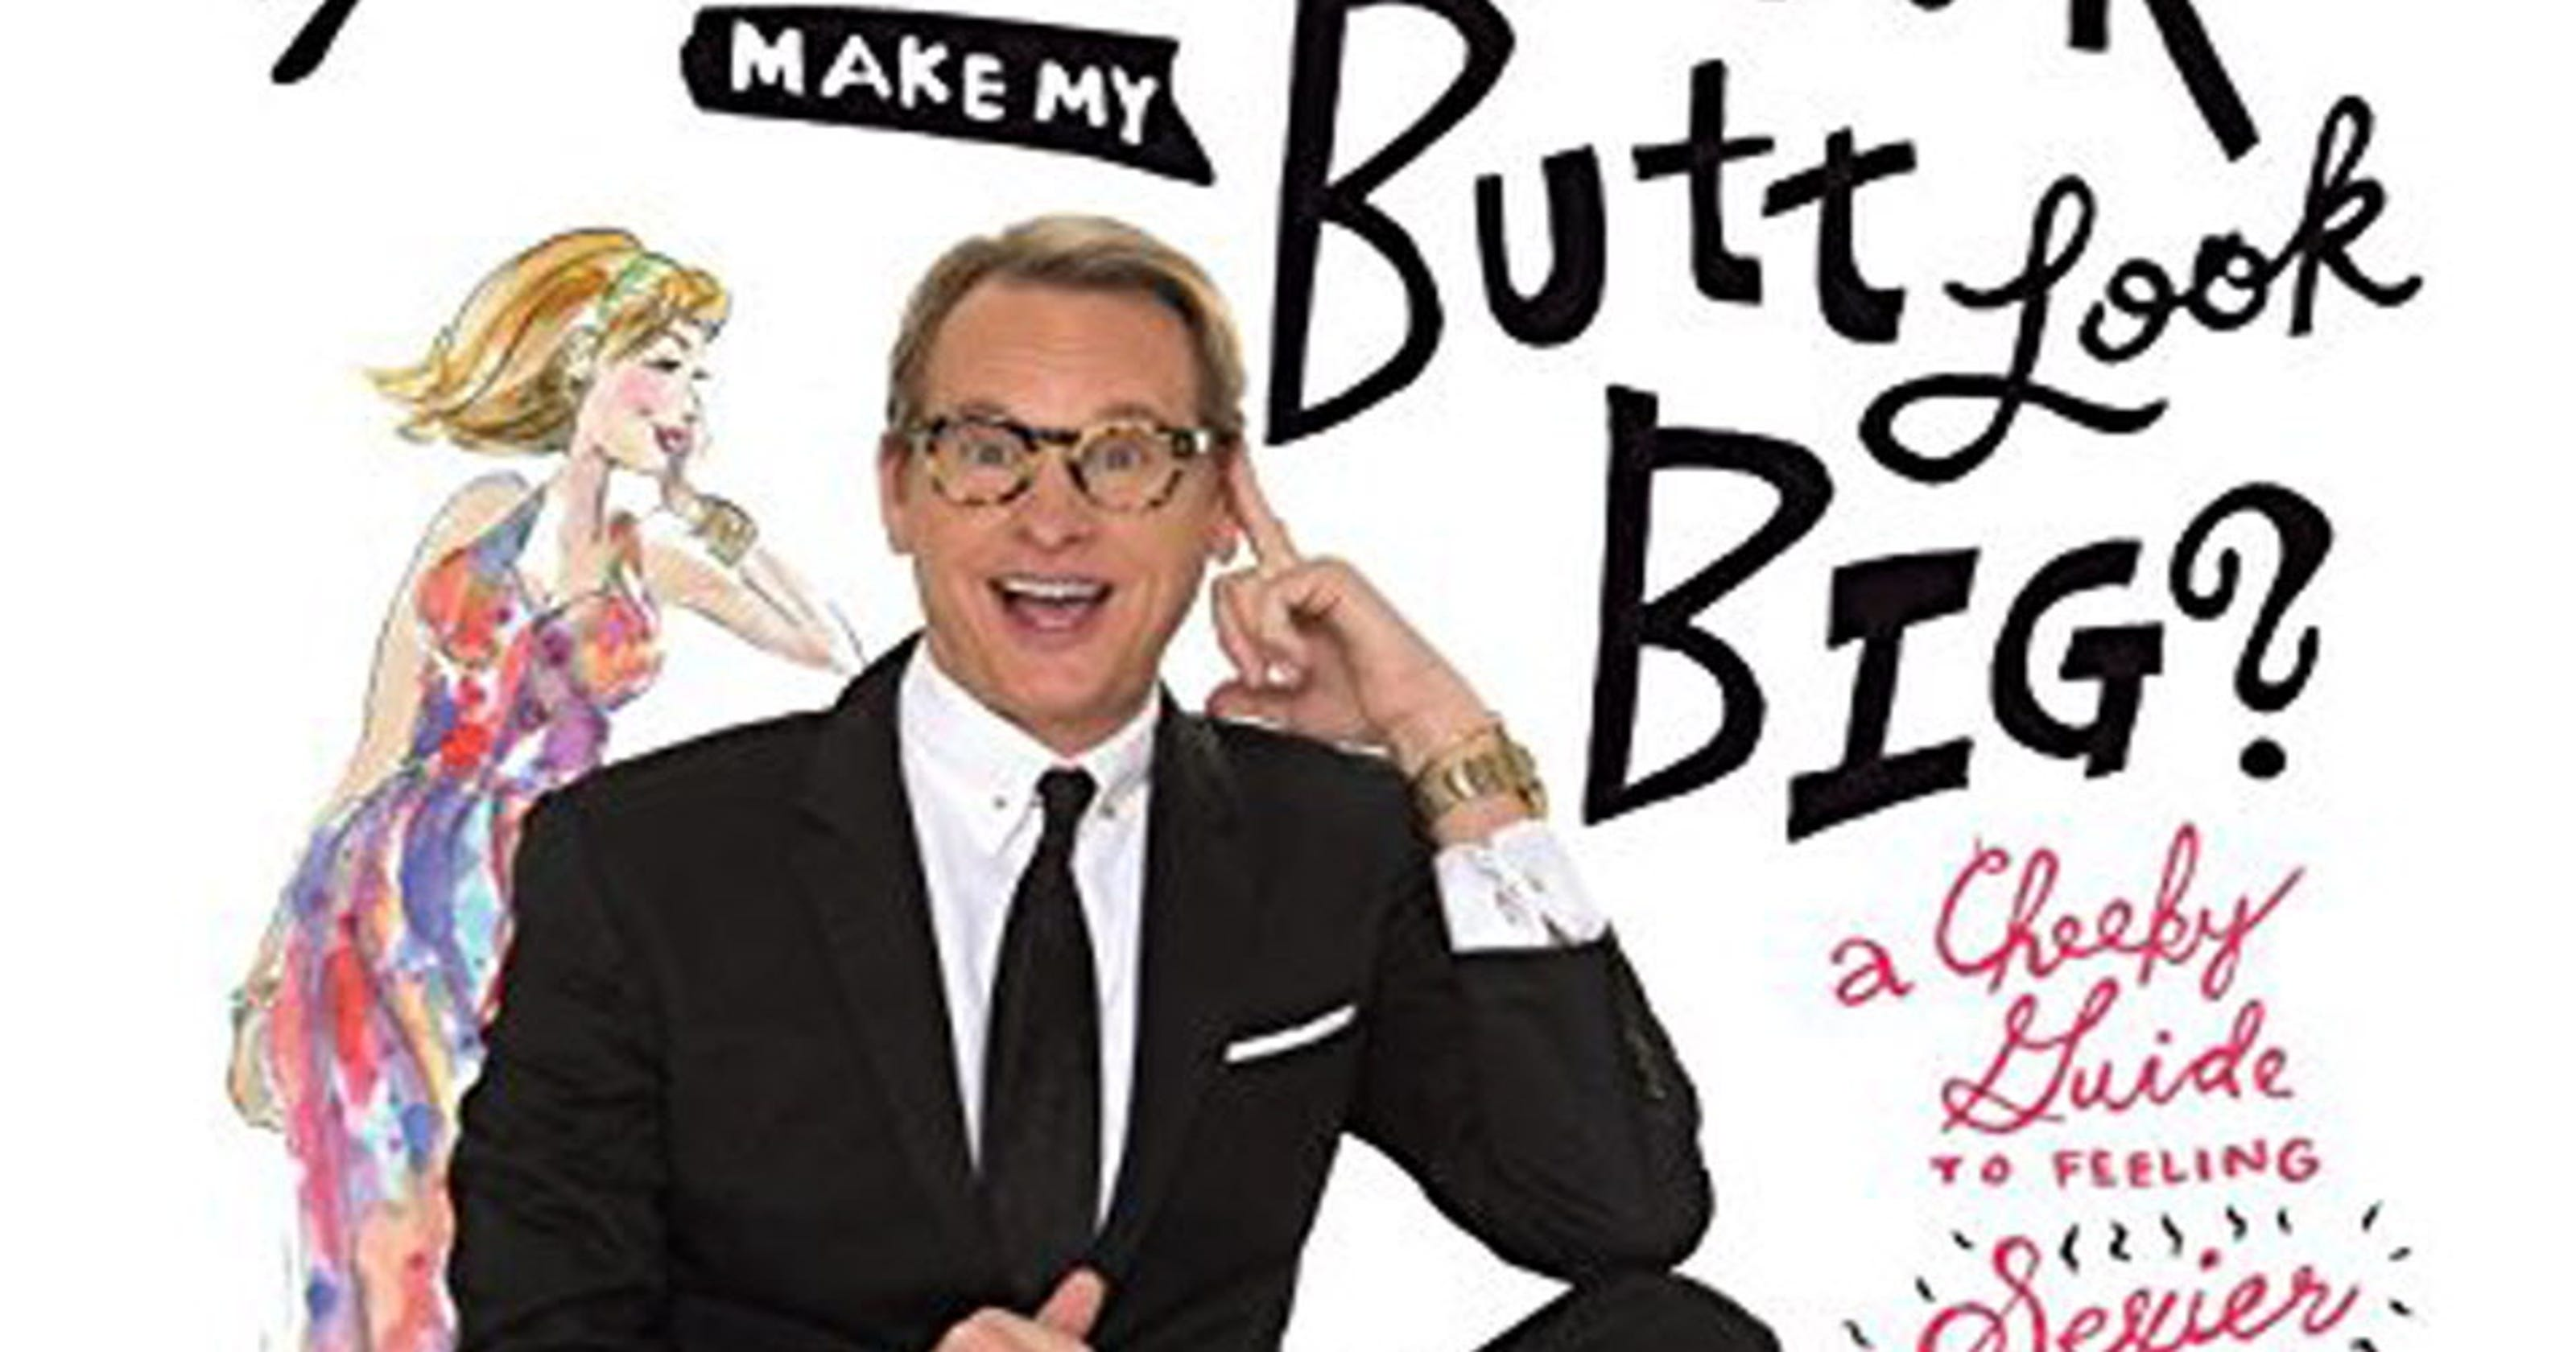 ea7be14d3de Carson Kressley to talk about new book in Ridgewood Oct. 12